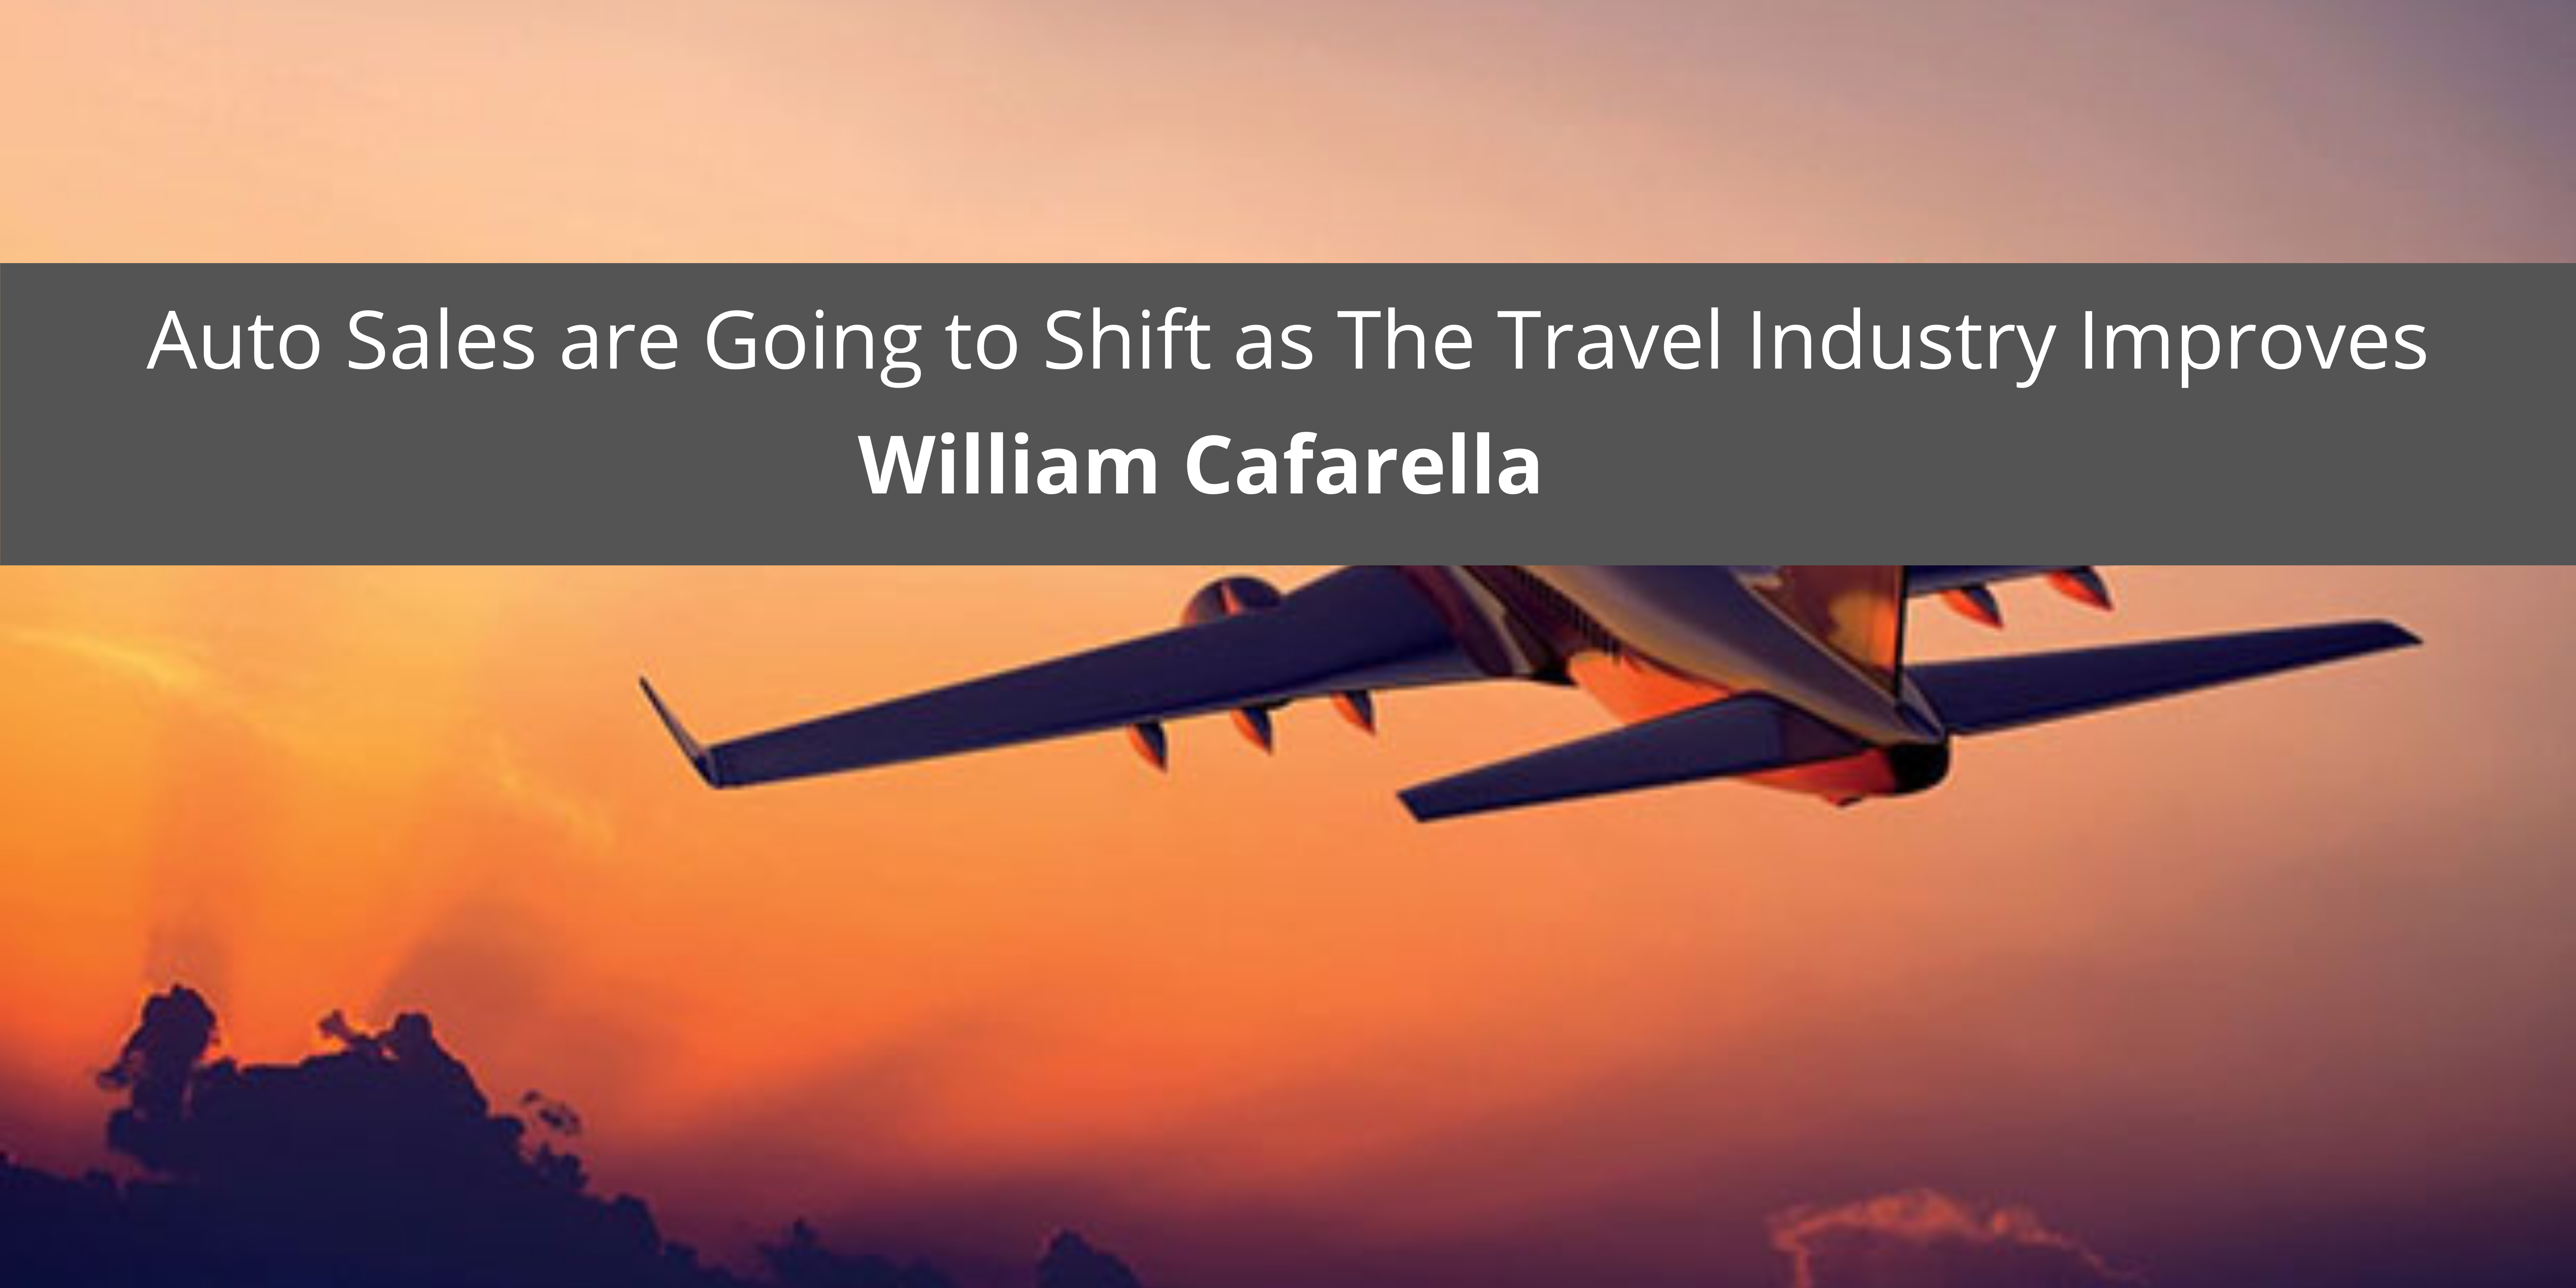 William Cafarella Believes Auto Sales are Going to Shift as The Travel Industry Improves